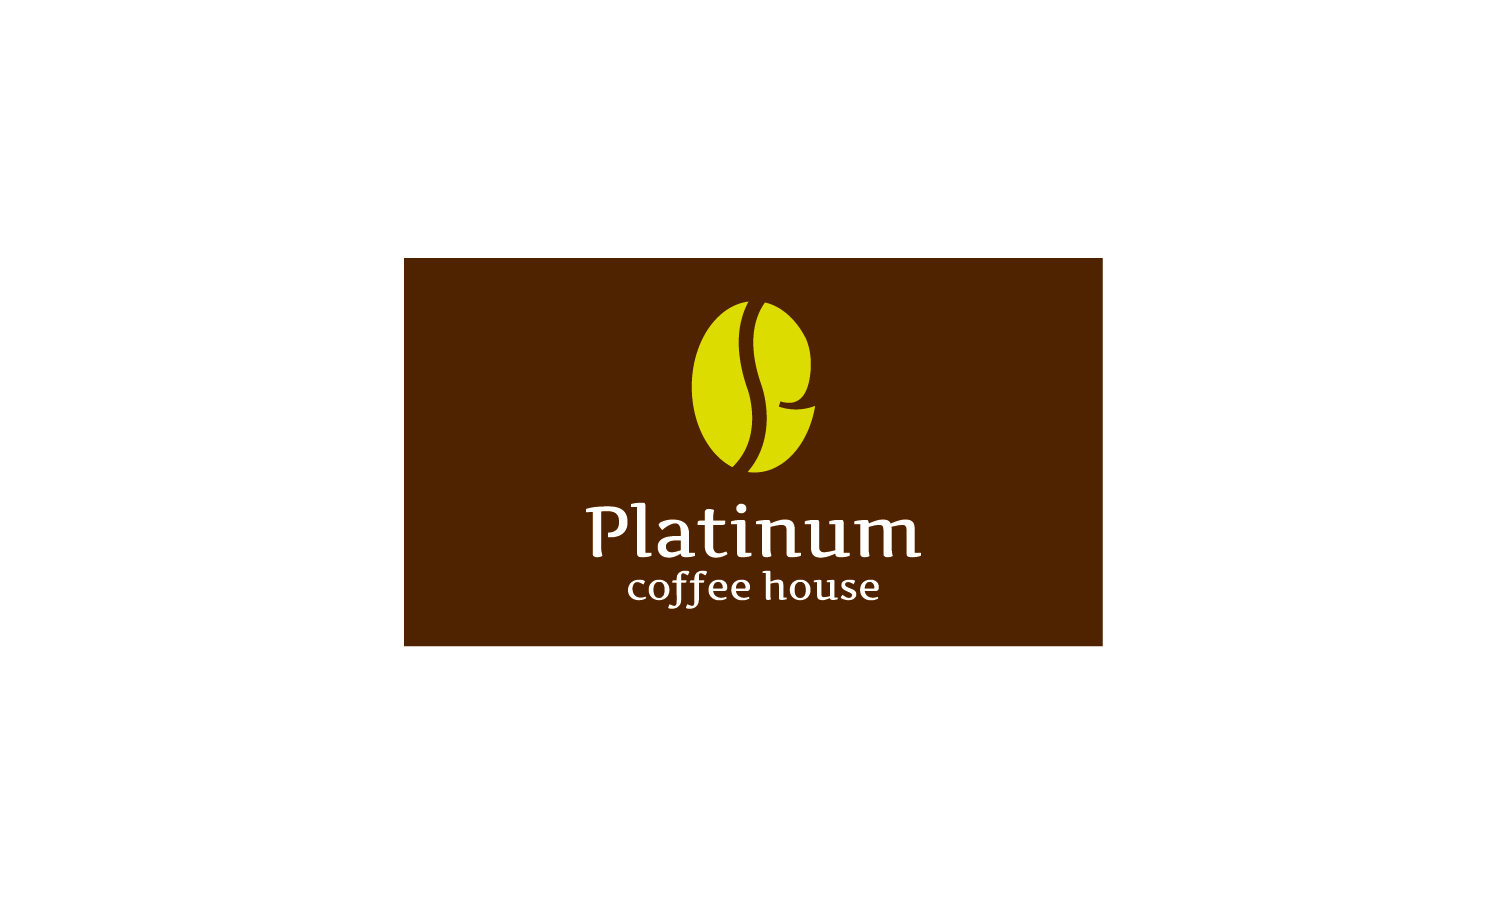 rhhcc_partners_platinum-coffee-house